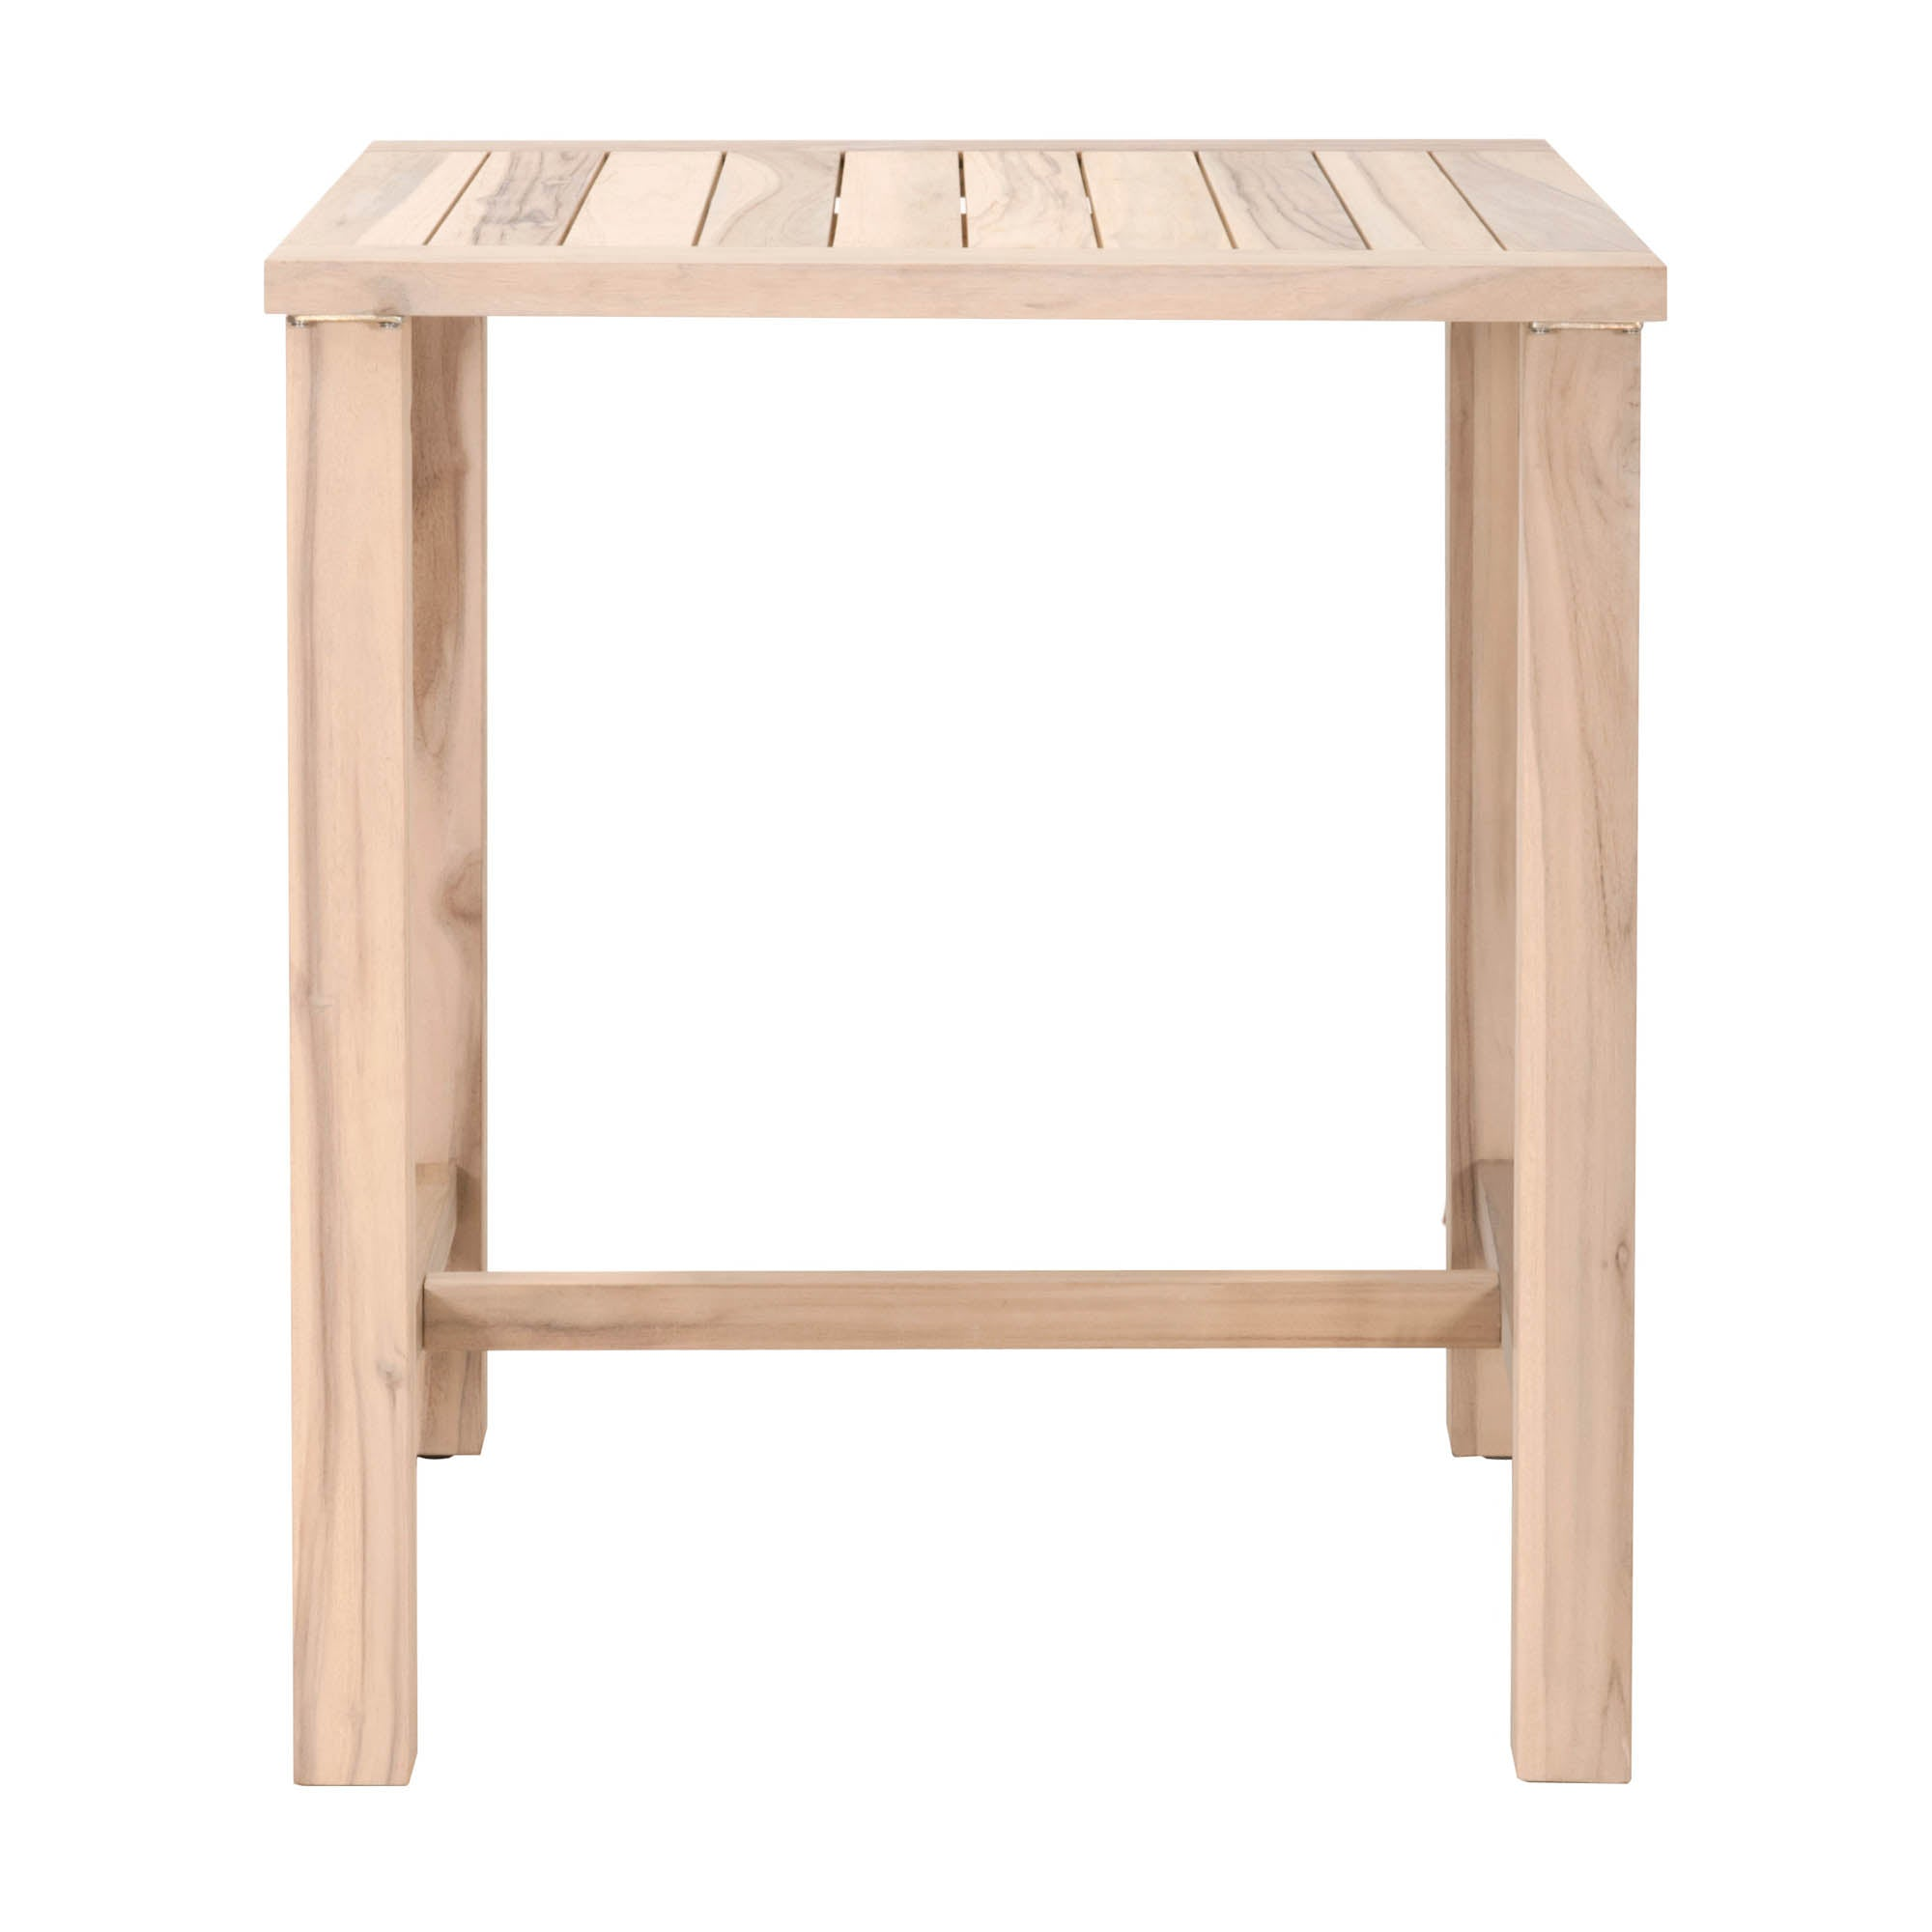 Catalina Outdoor Square Bar Height Dining Table